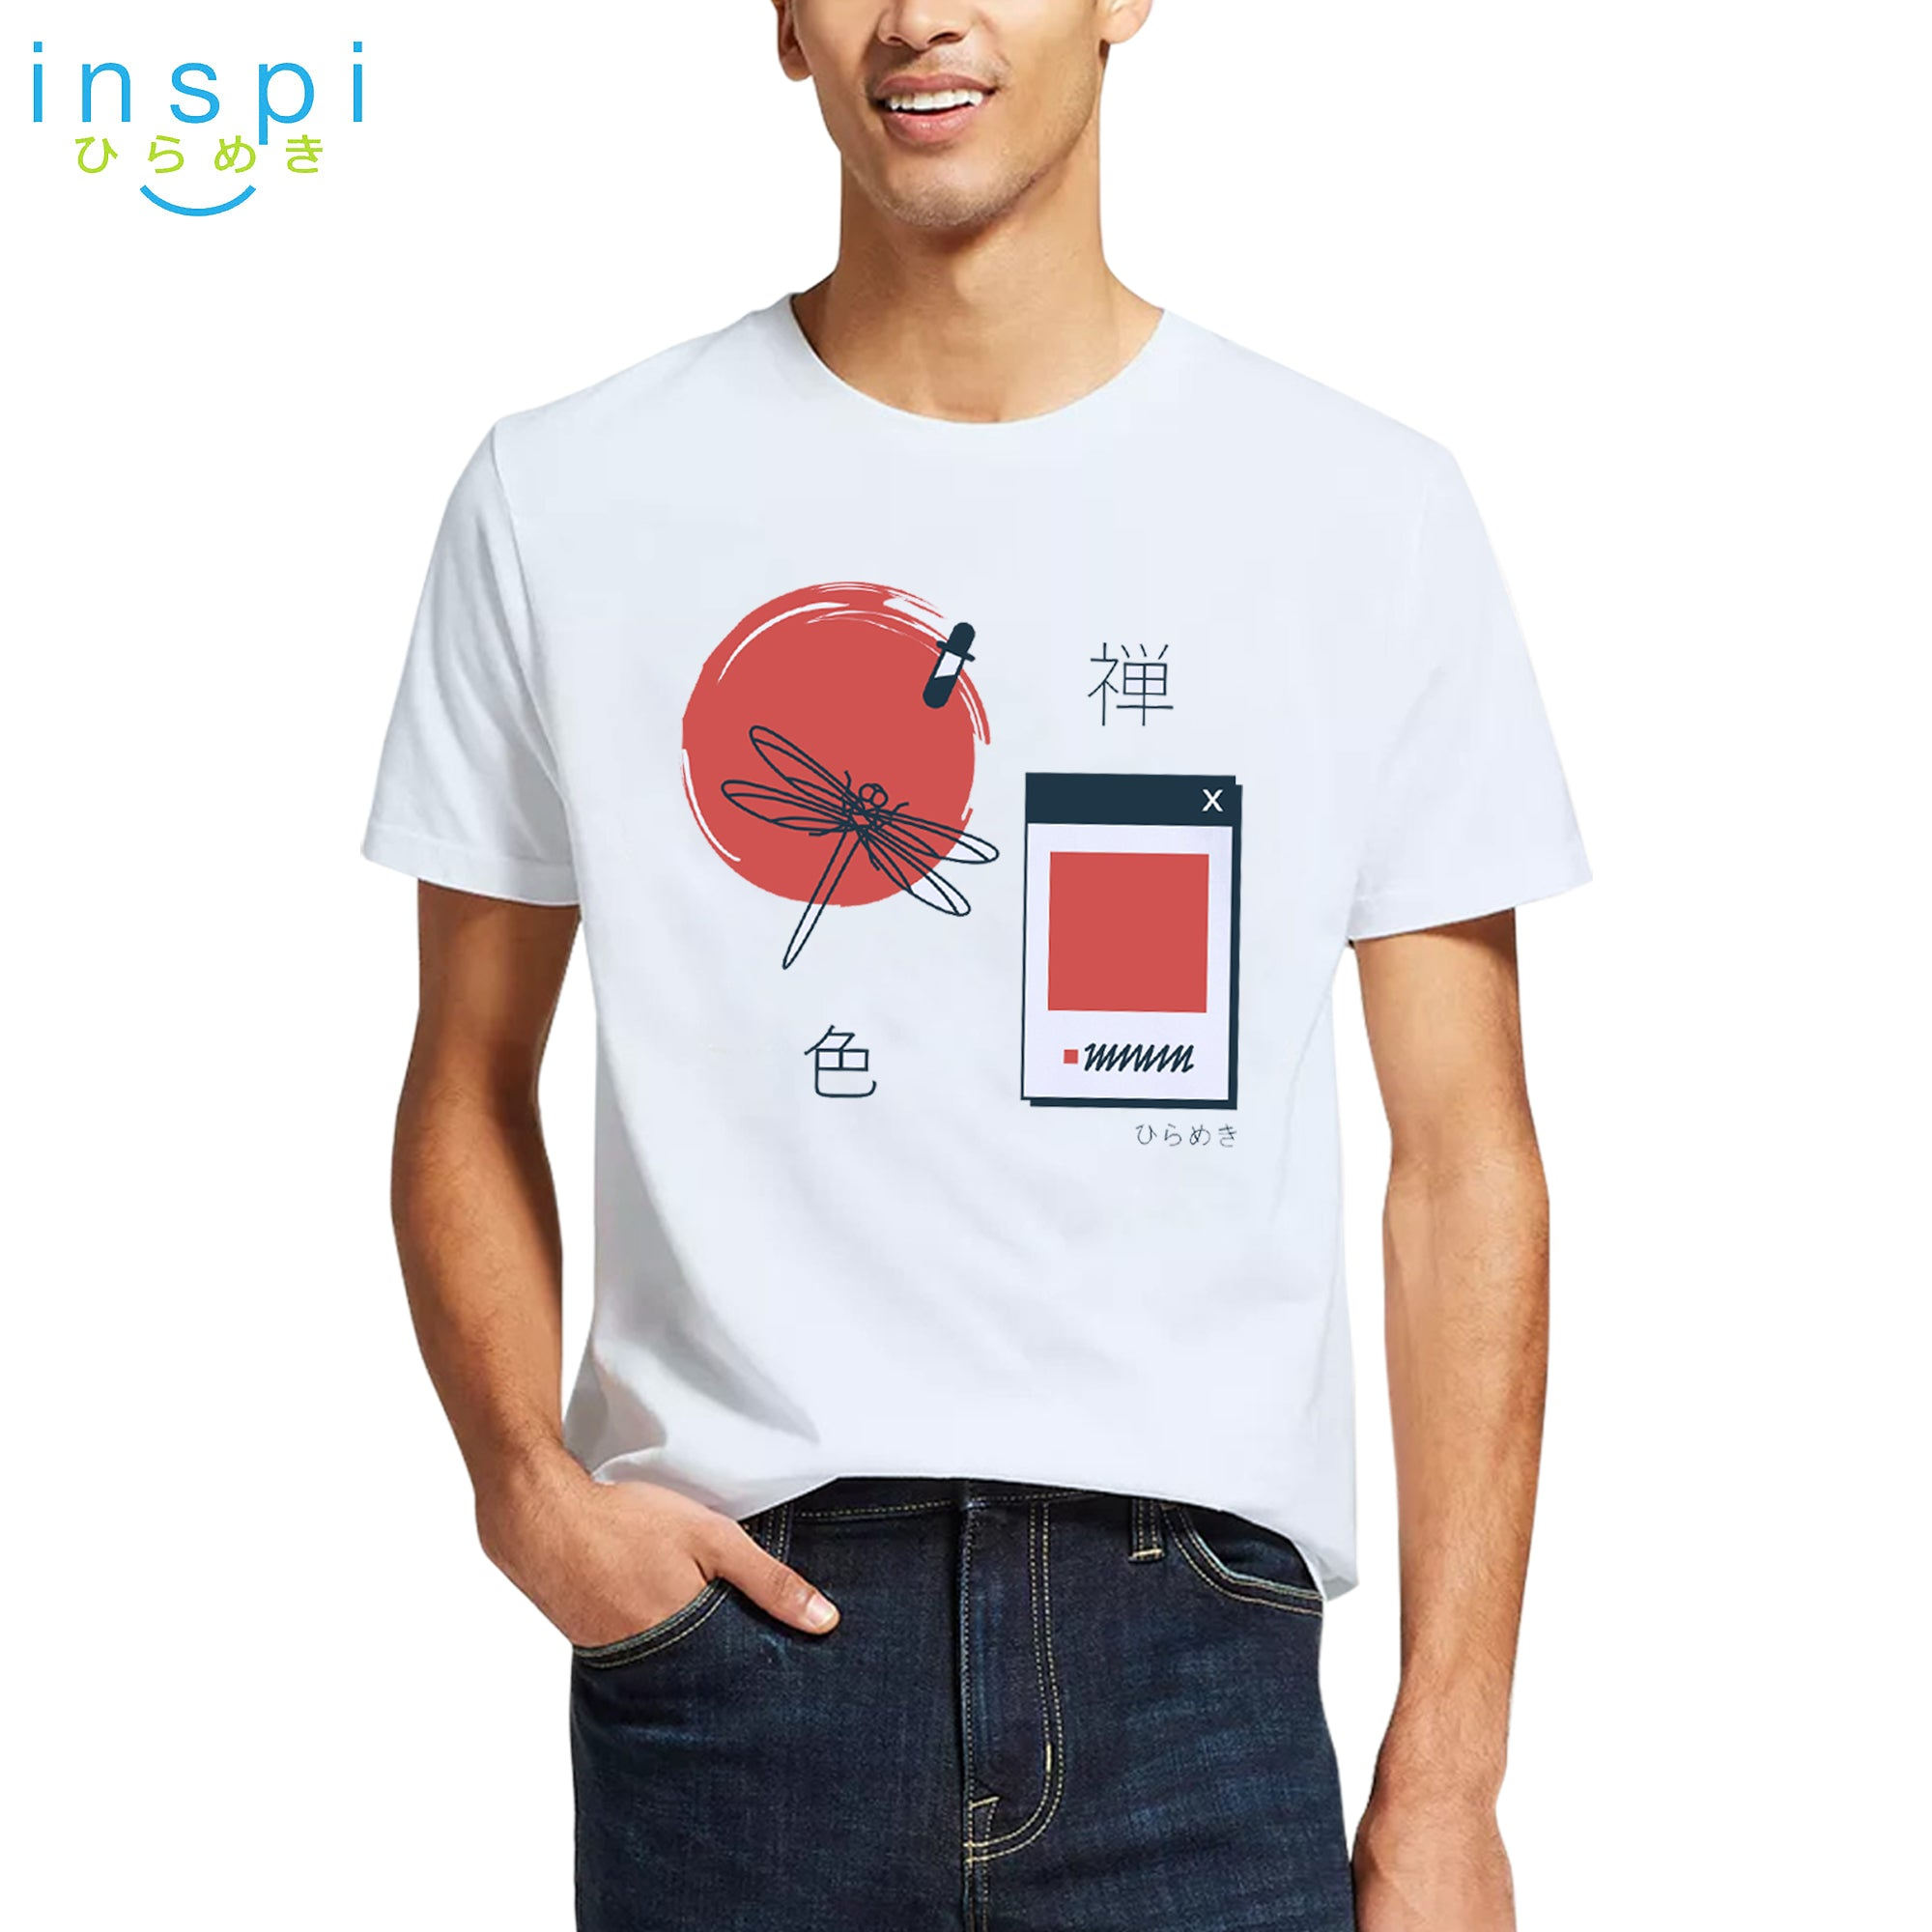 INSPI Tees Zen Color Graphic Tshirt in White